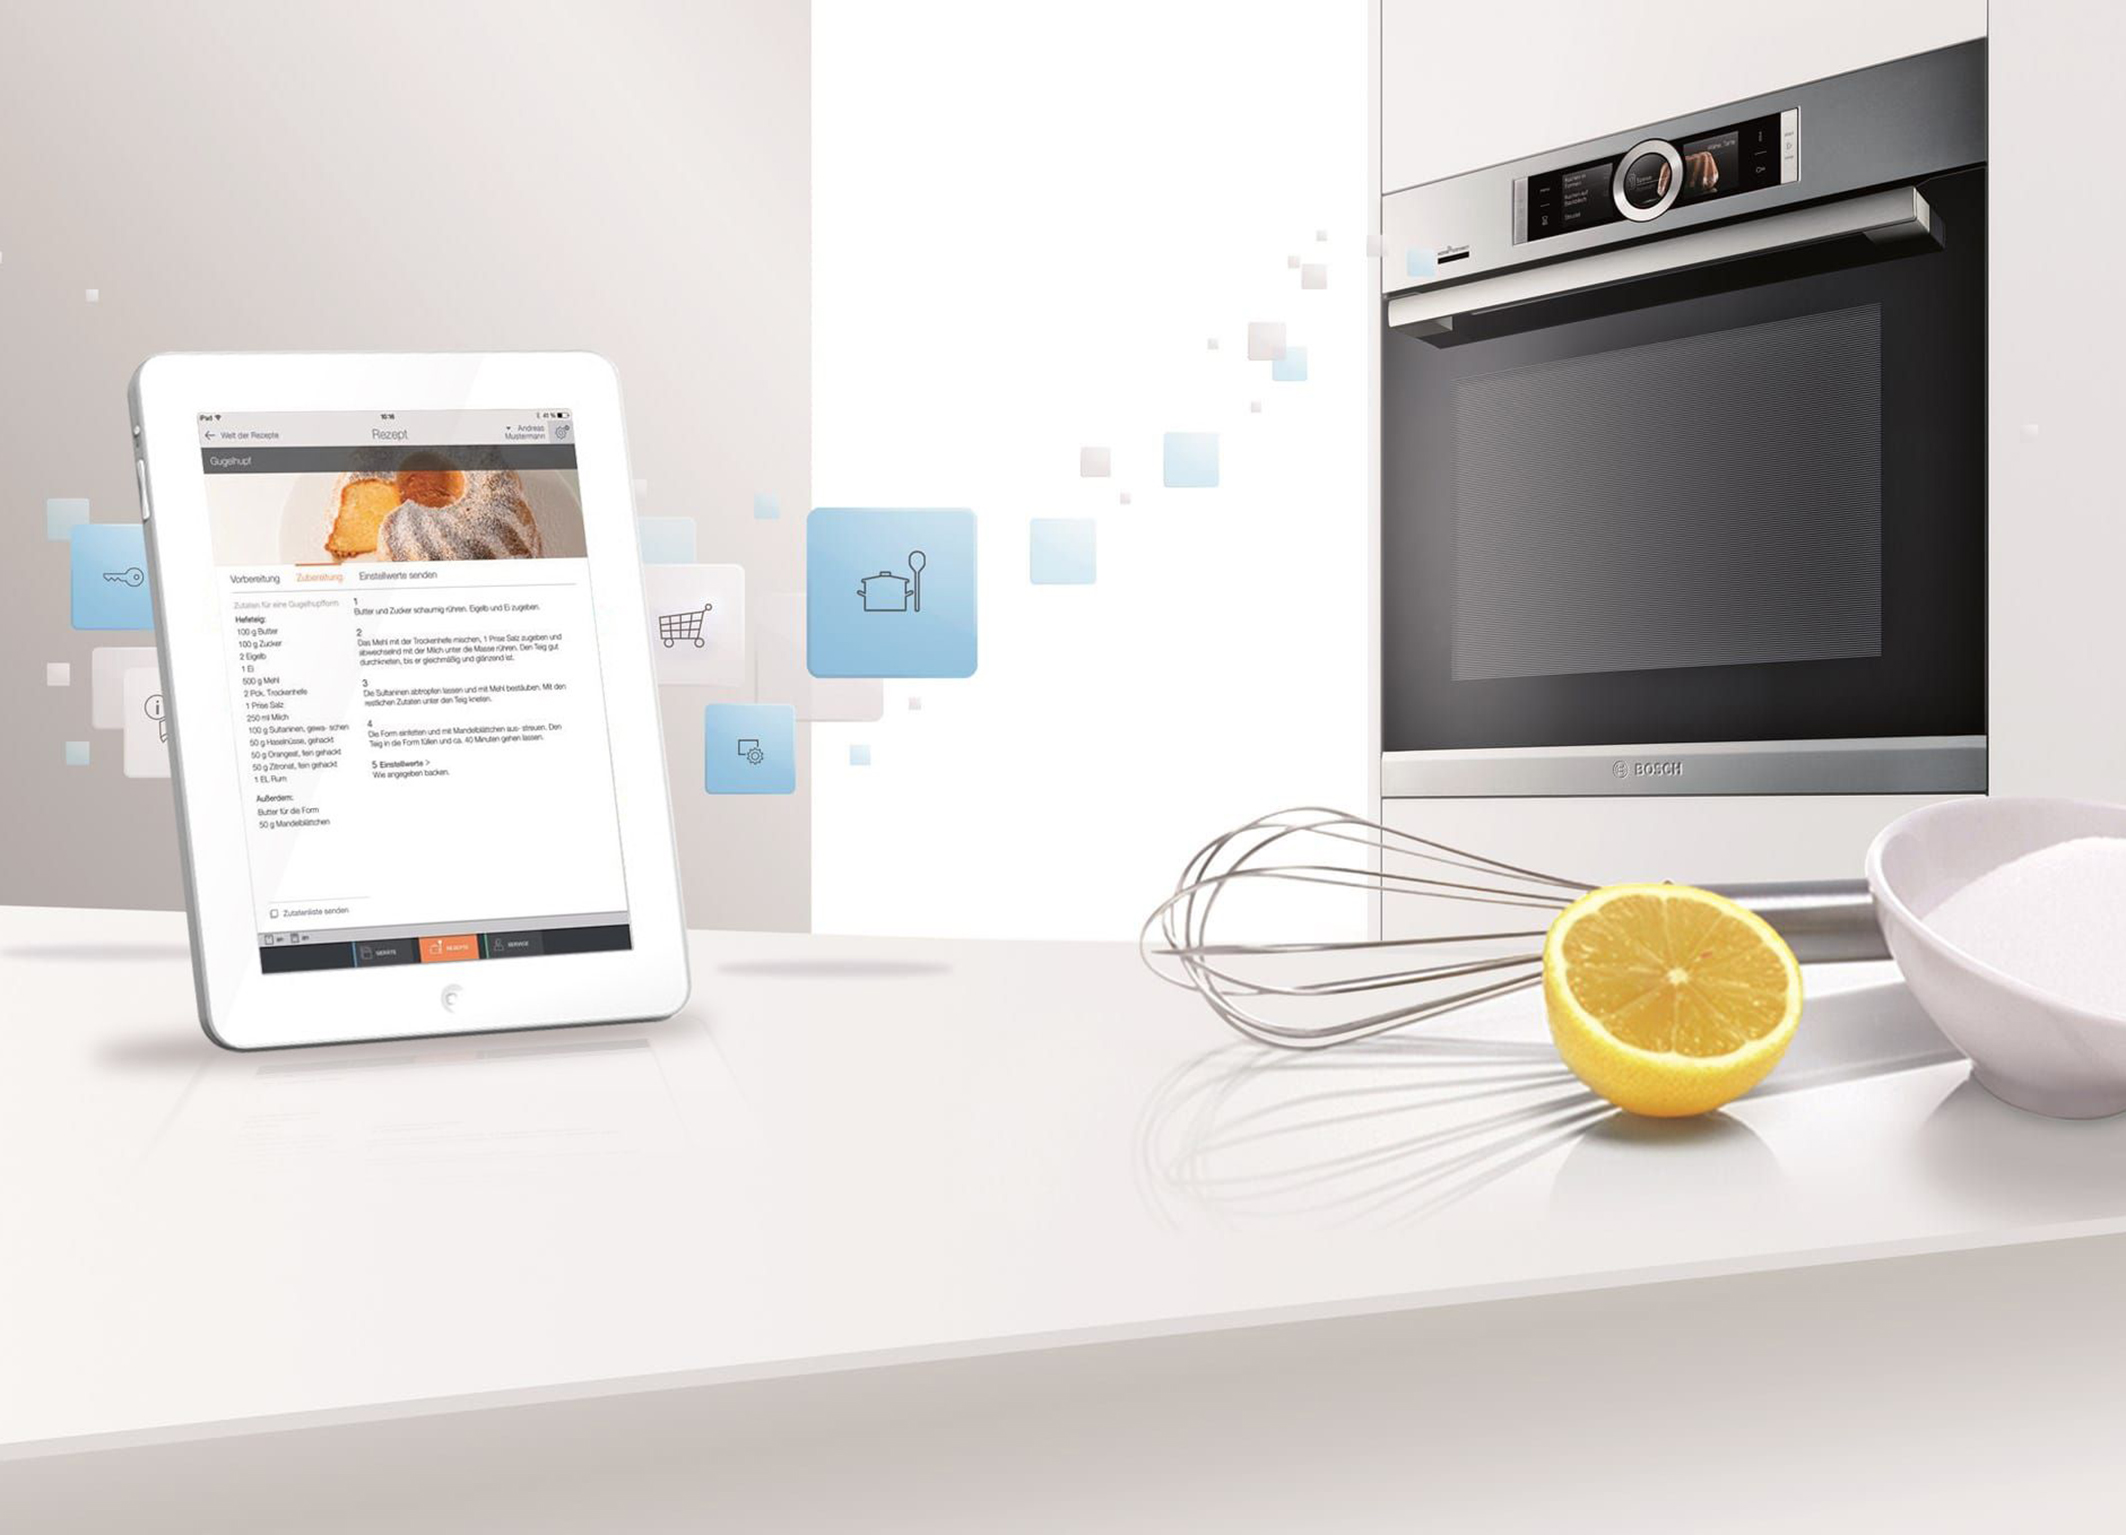 High-tech kitchen: networked home appliances